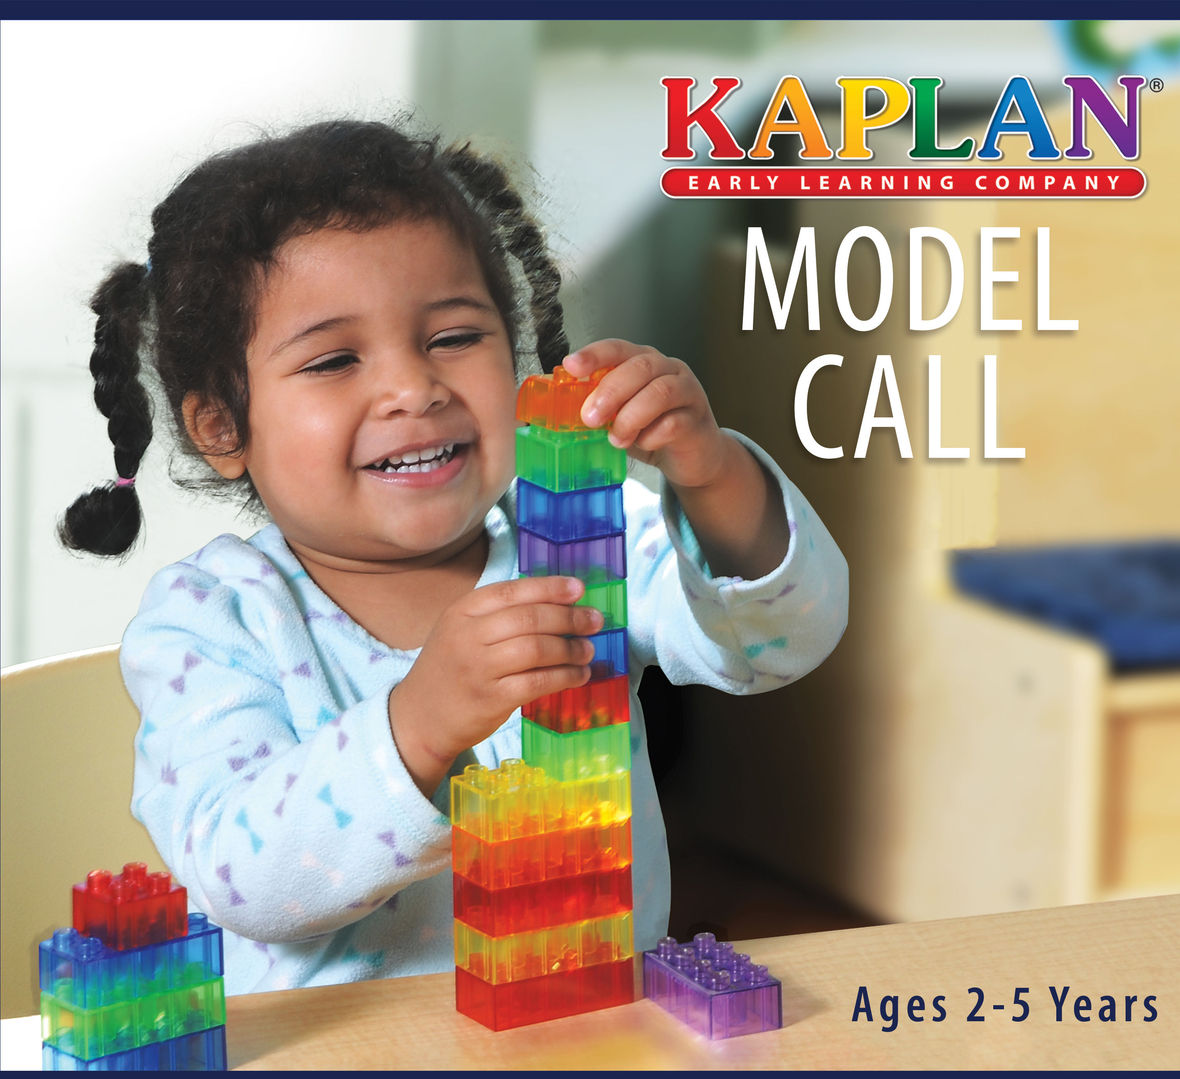 Kaplan-Early-Learning-Company-Model-Call